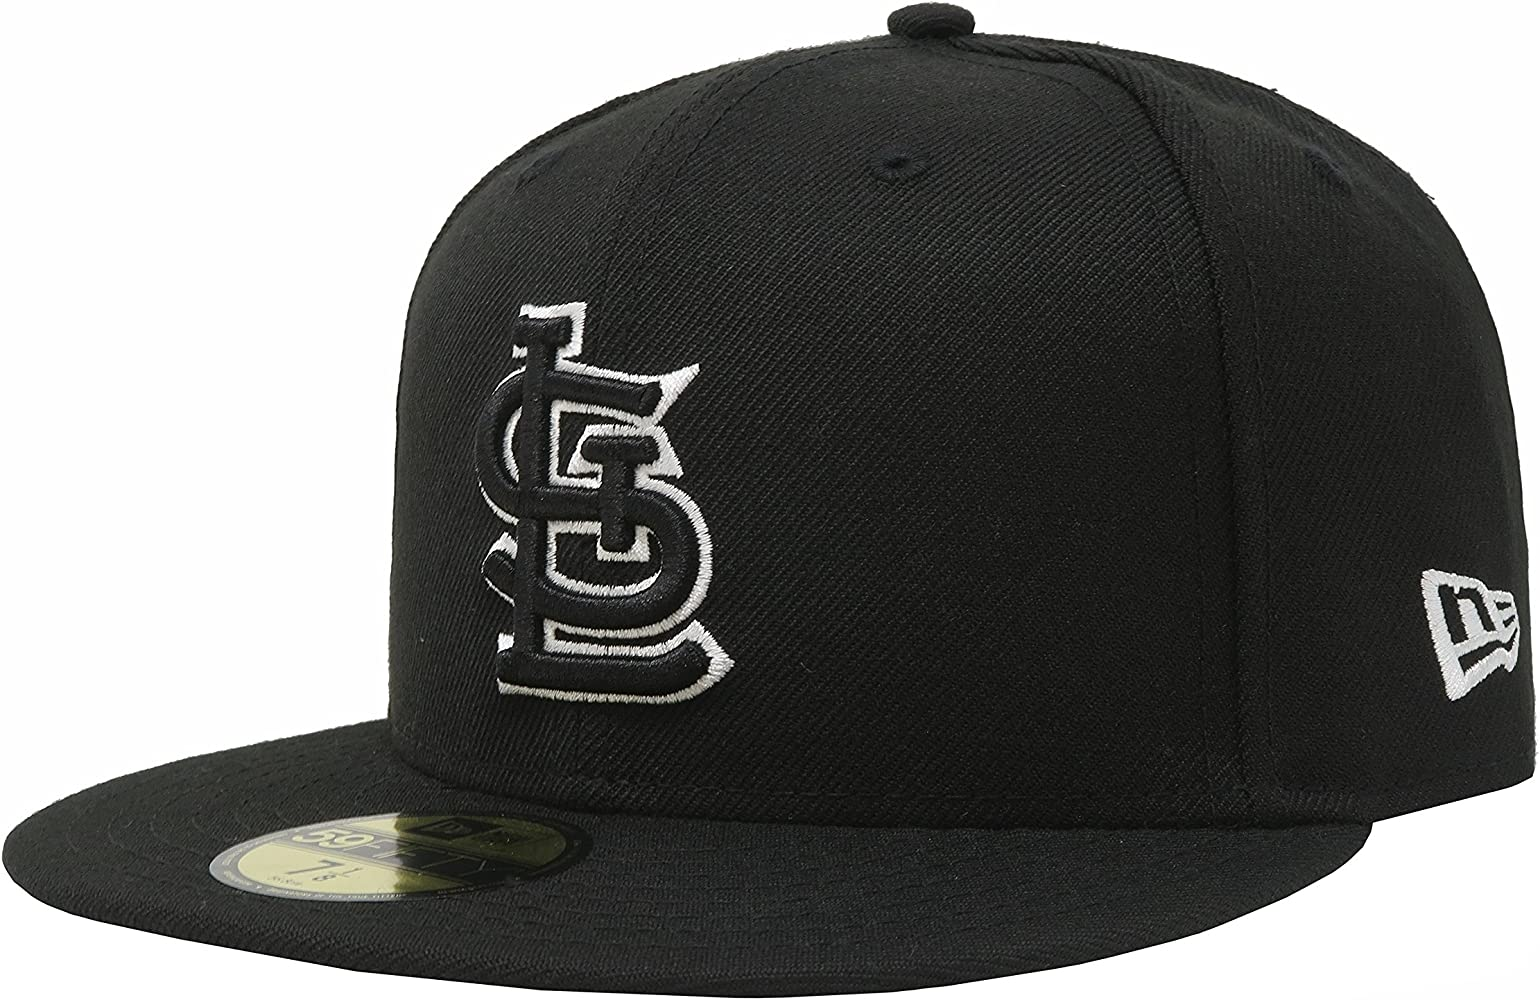 uk availability b48c4 32e1d New Era 59Fifty Men Hat MLB St. Louis Cardinals Black White Fitted Headwear  Cap